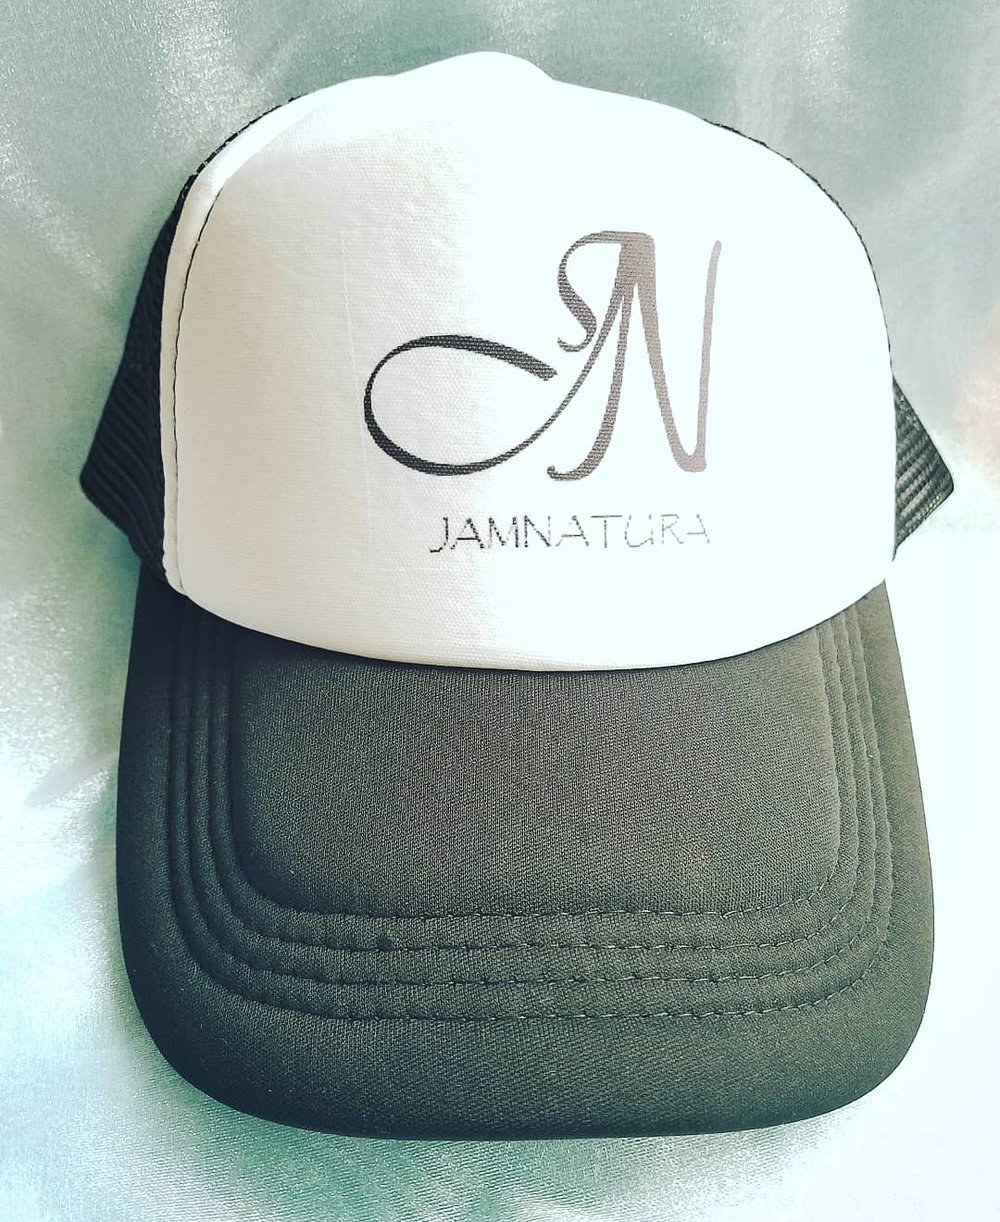 JAMNATURA HATS  For orders $75.00 & UP